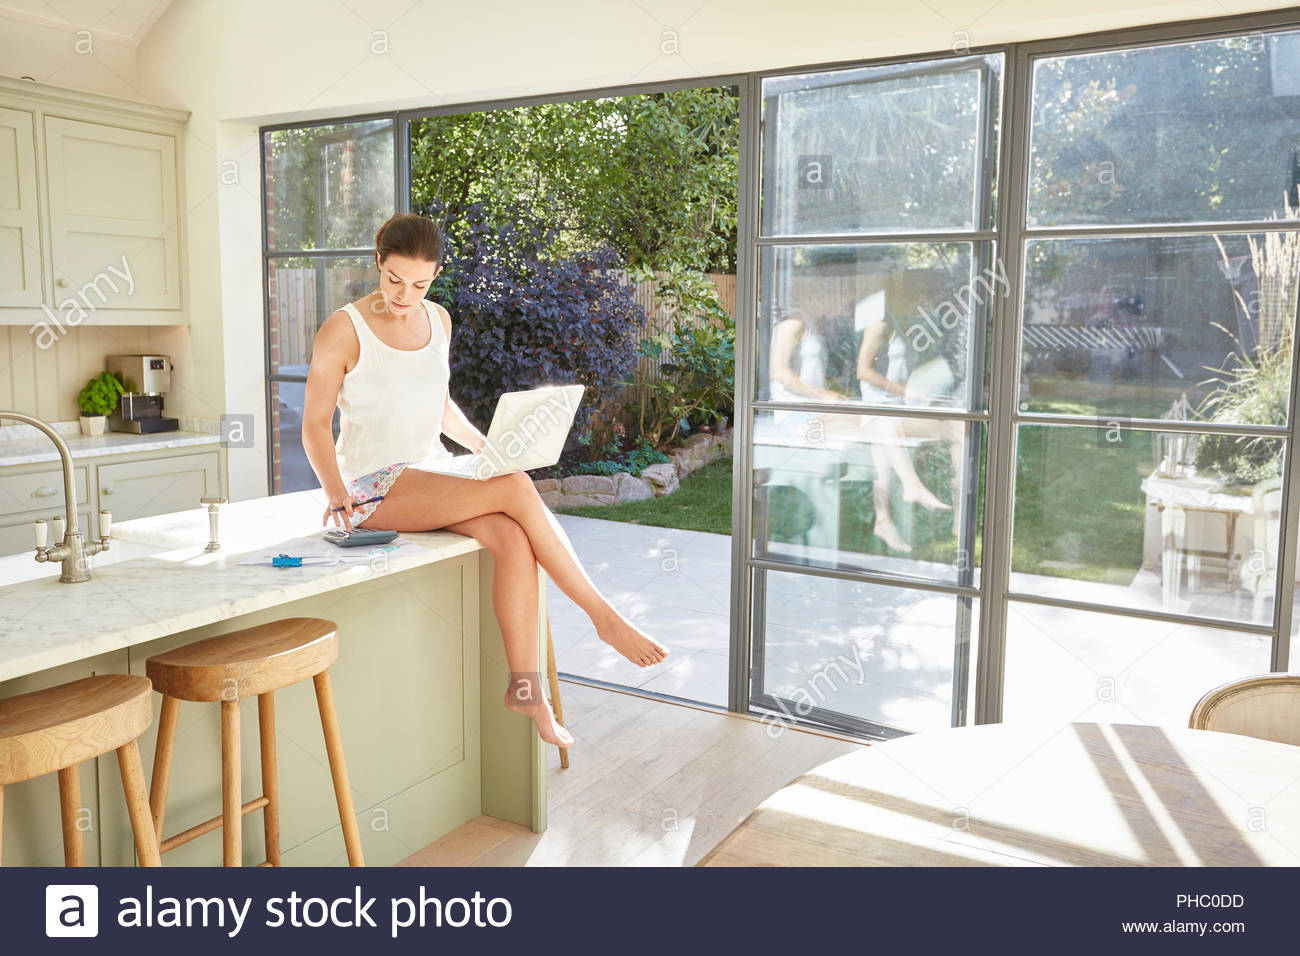 Mid adult woman using laptop. Photo Stock